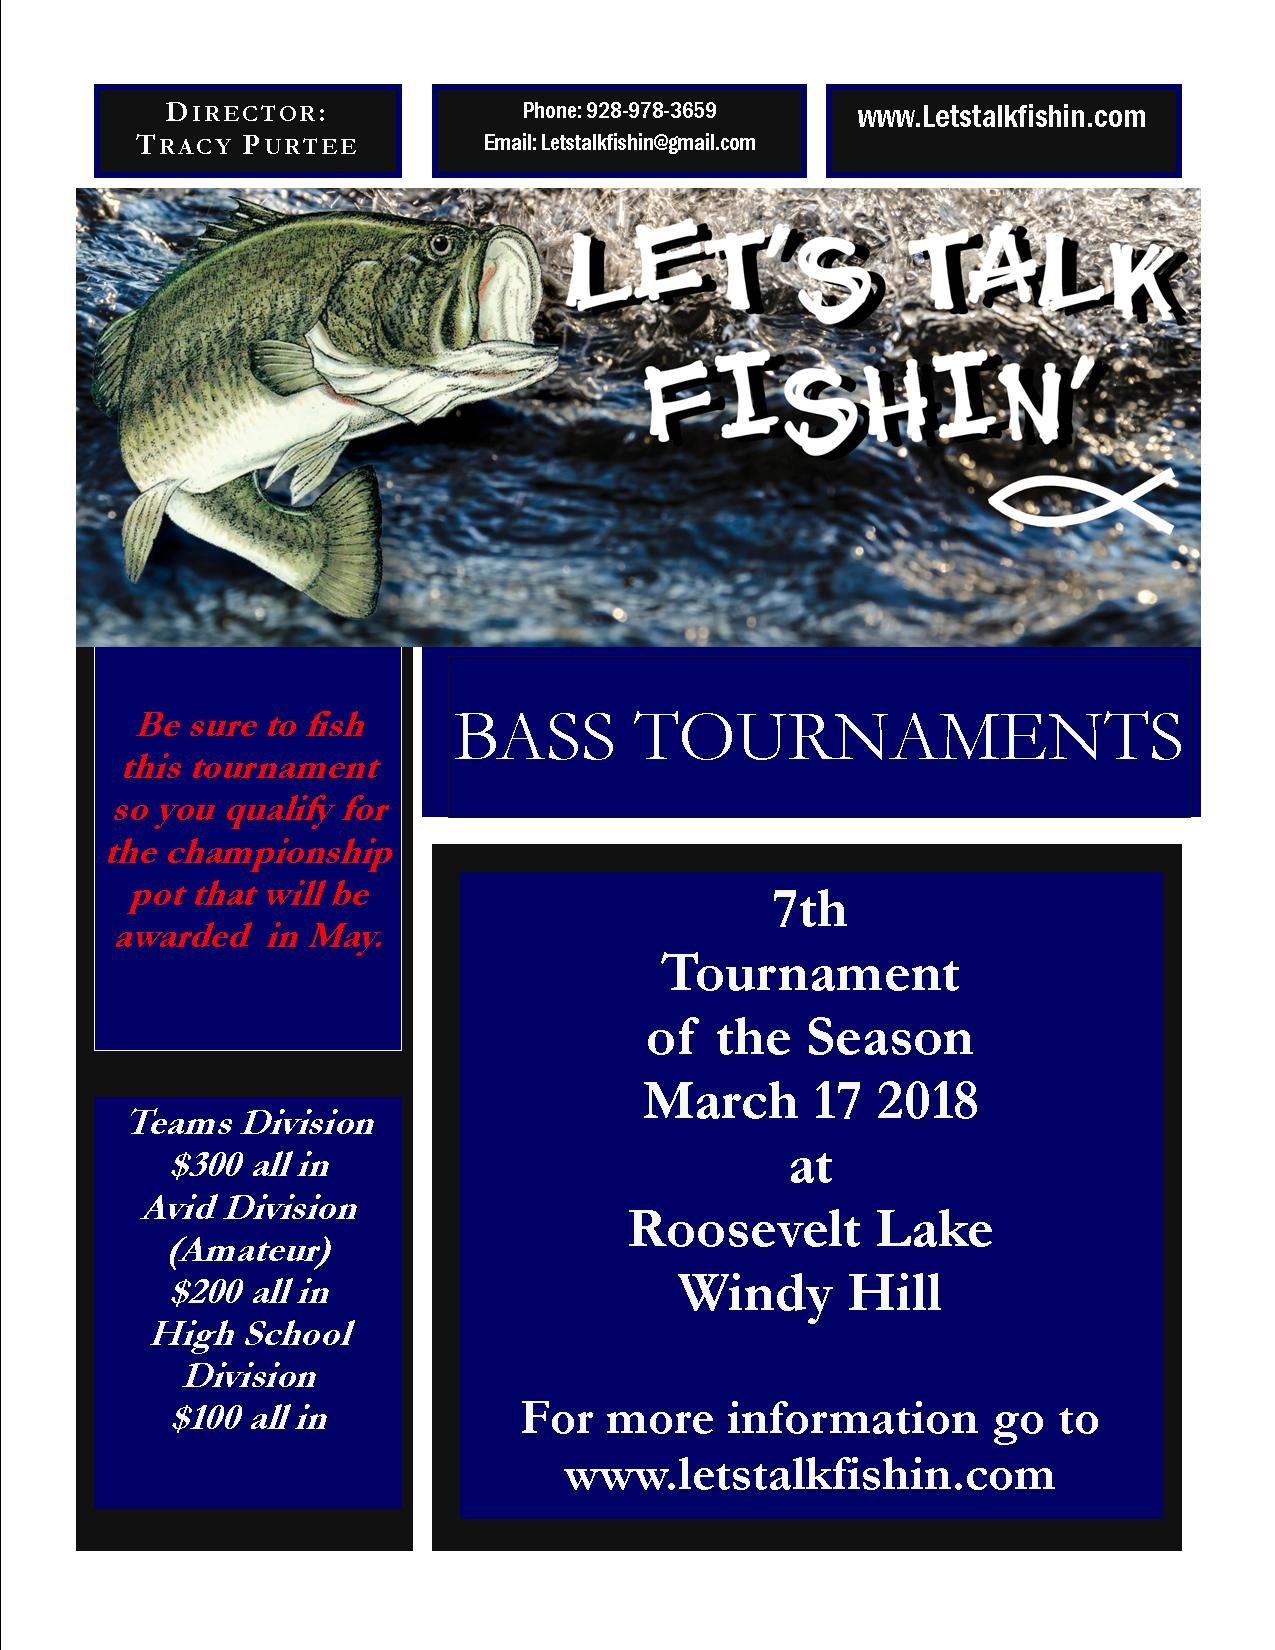 Click image for larger version  Name:7th Tournament.jpg Views:1128 Size:283.6 KB ID:96826